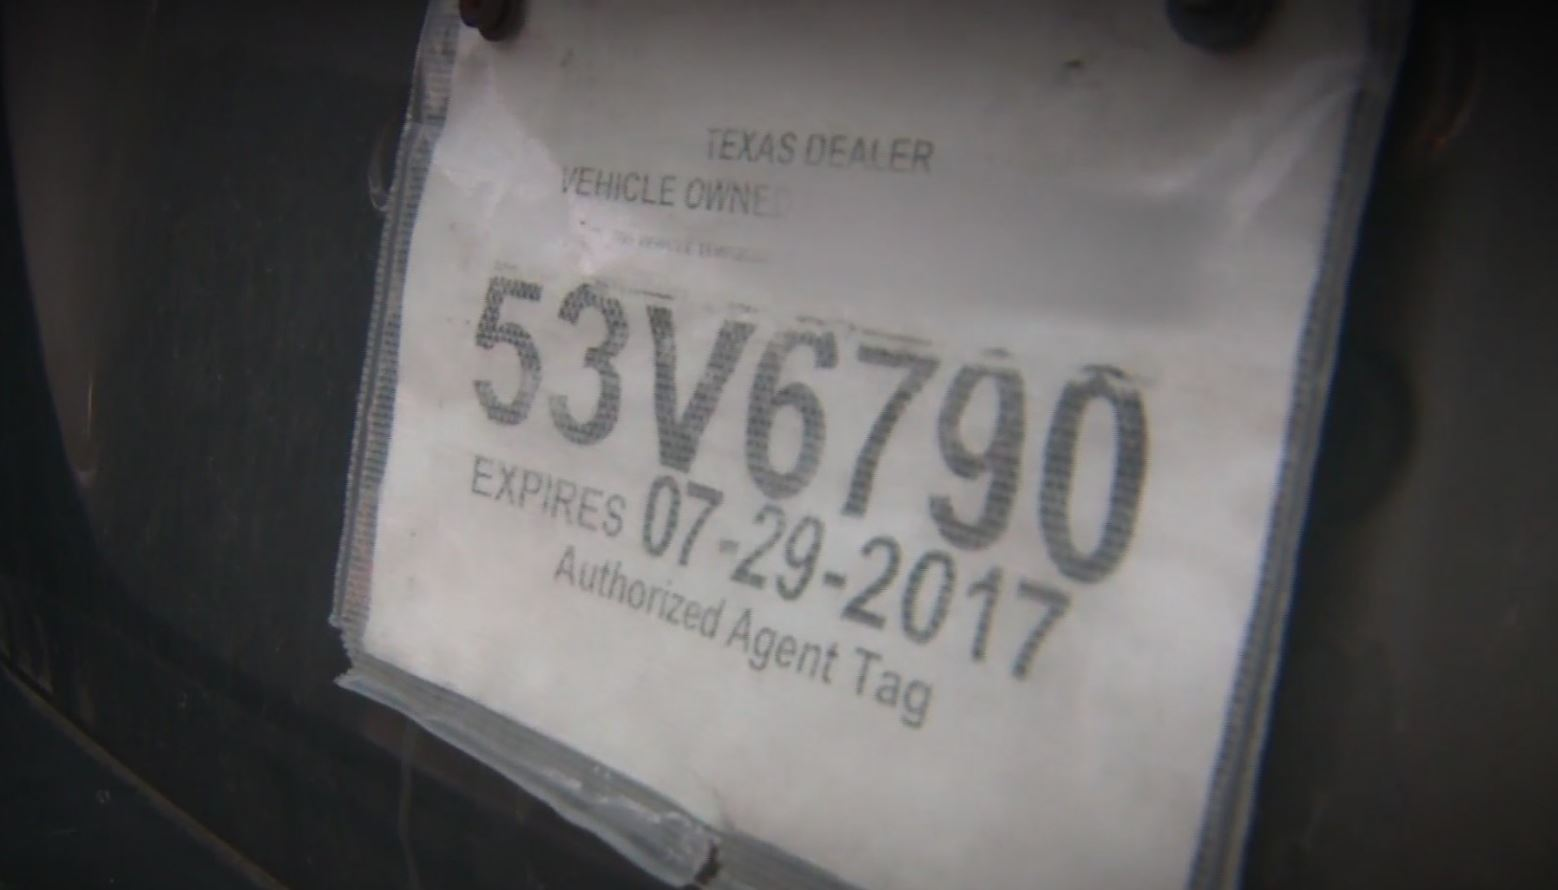 Fake Texas car tag